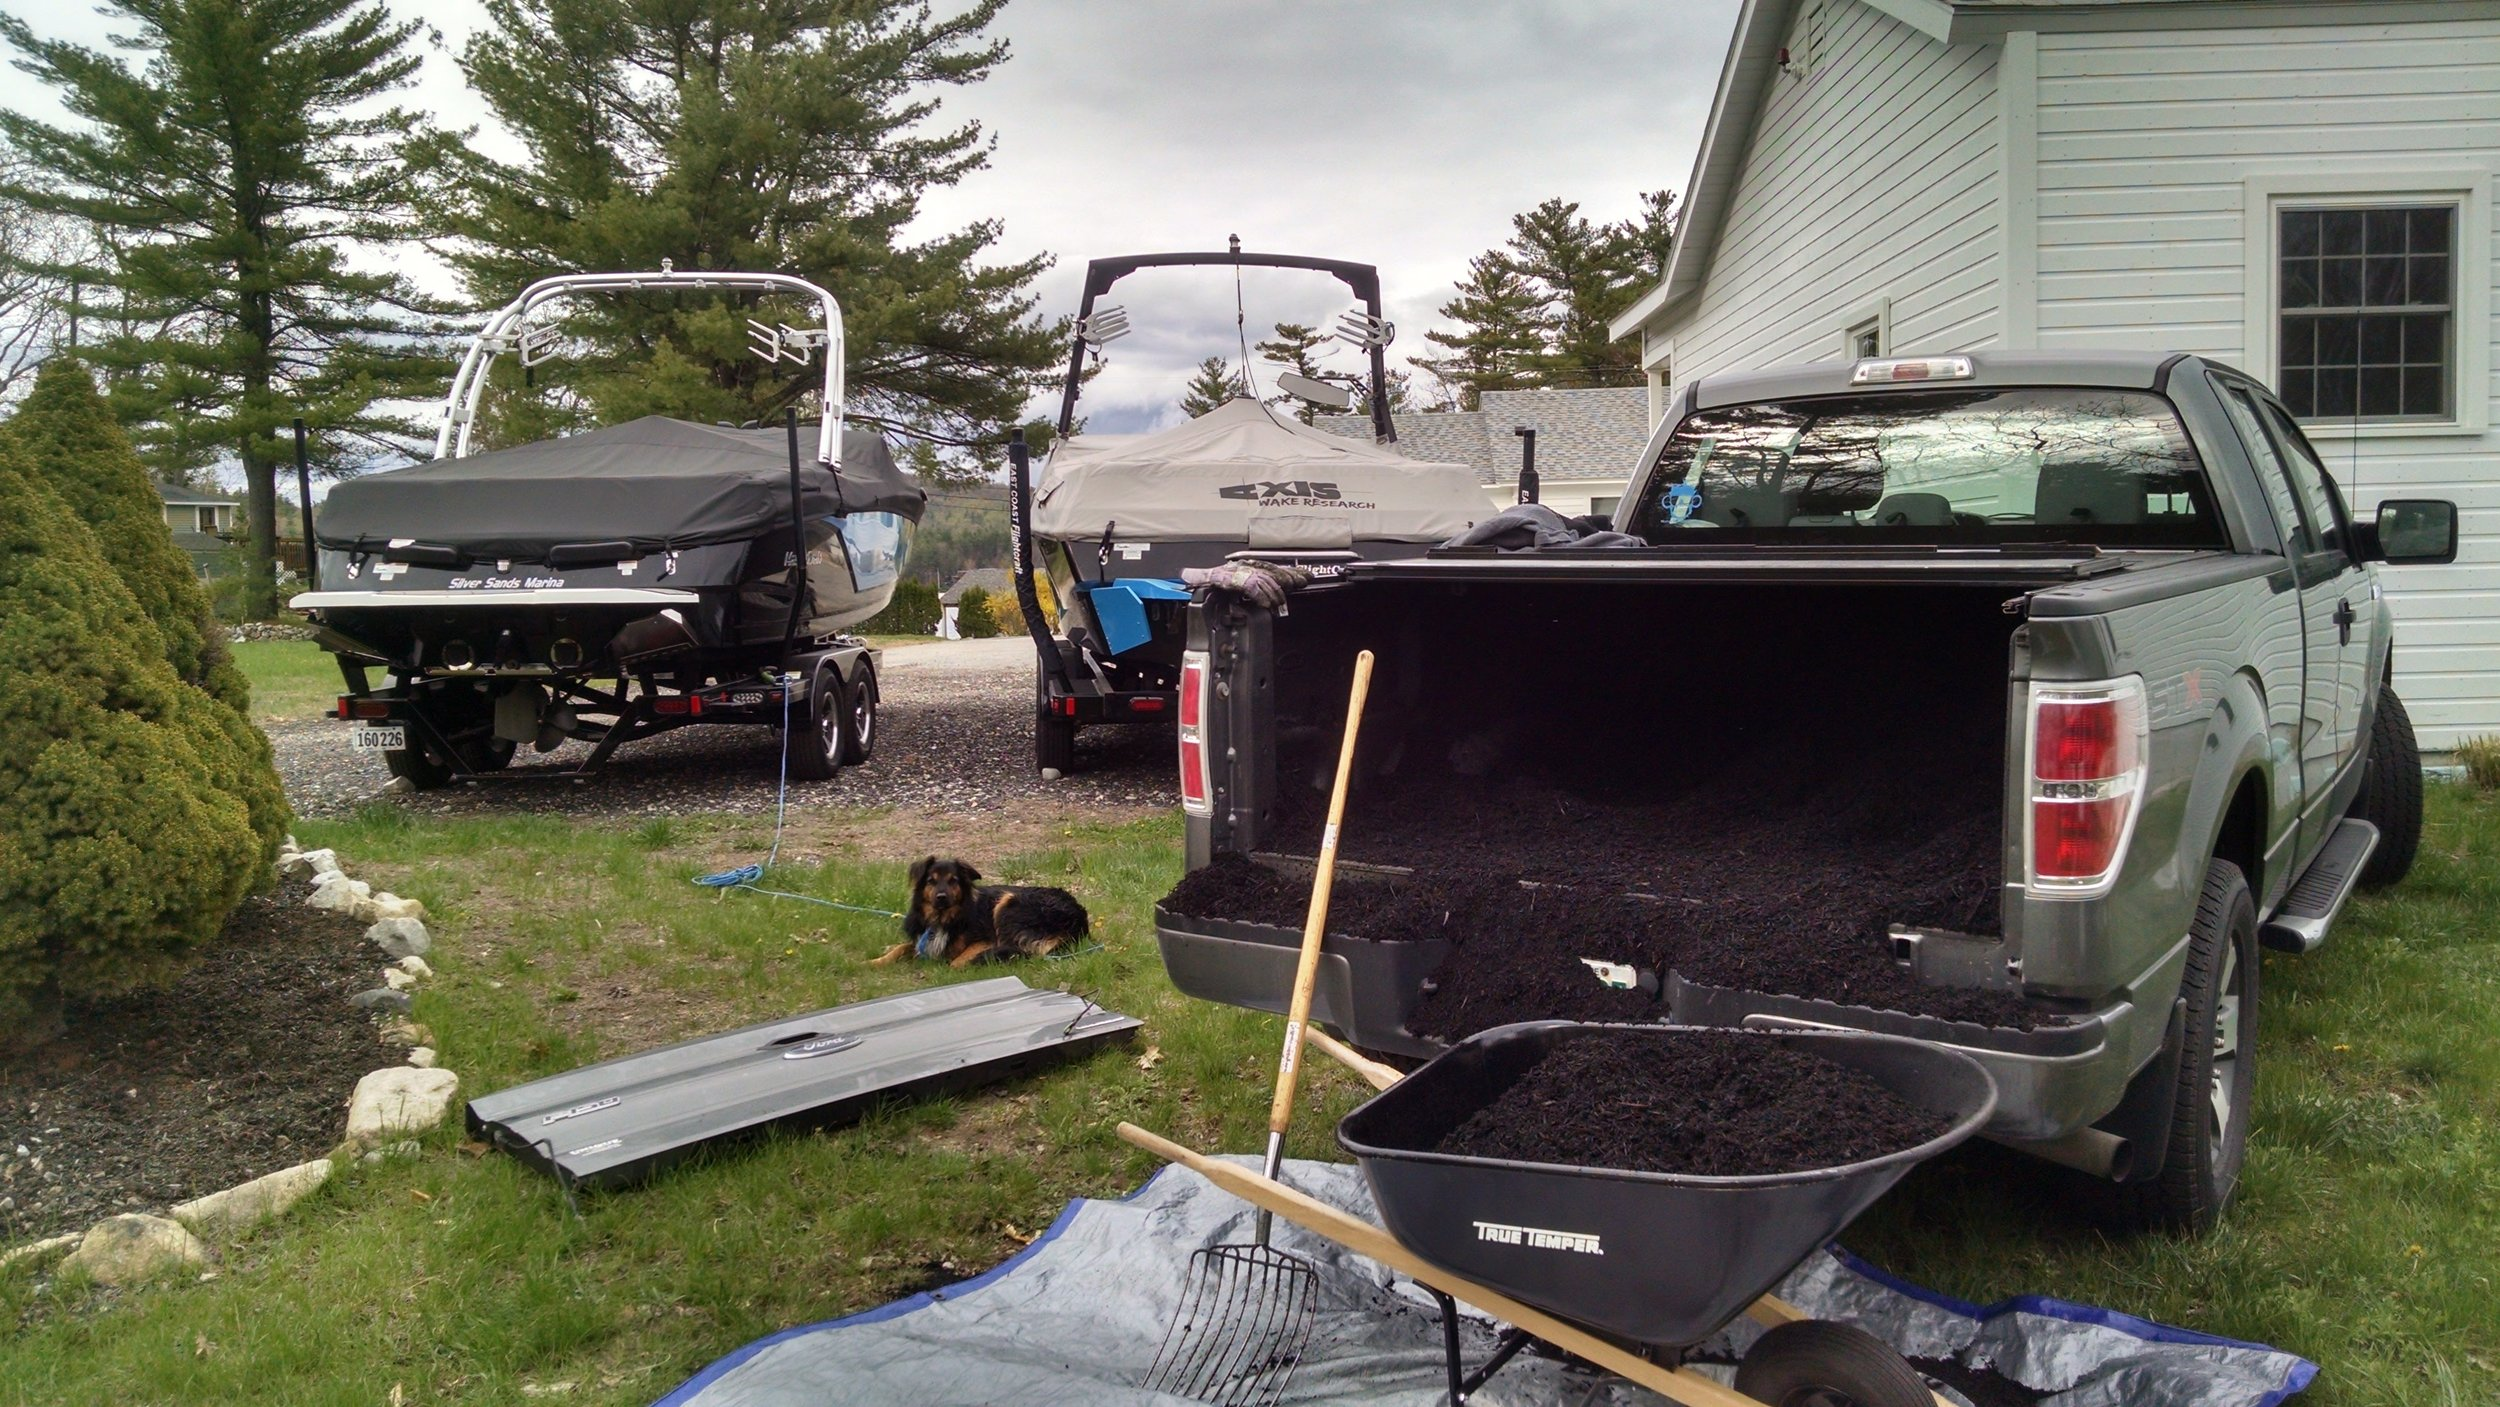 Spreading mulch with my sidekick Tuckerman...and those gorgeous boats.